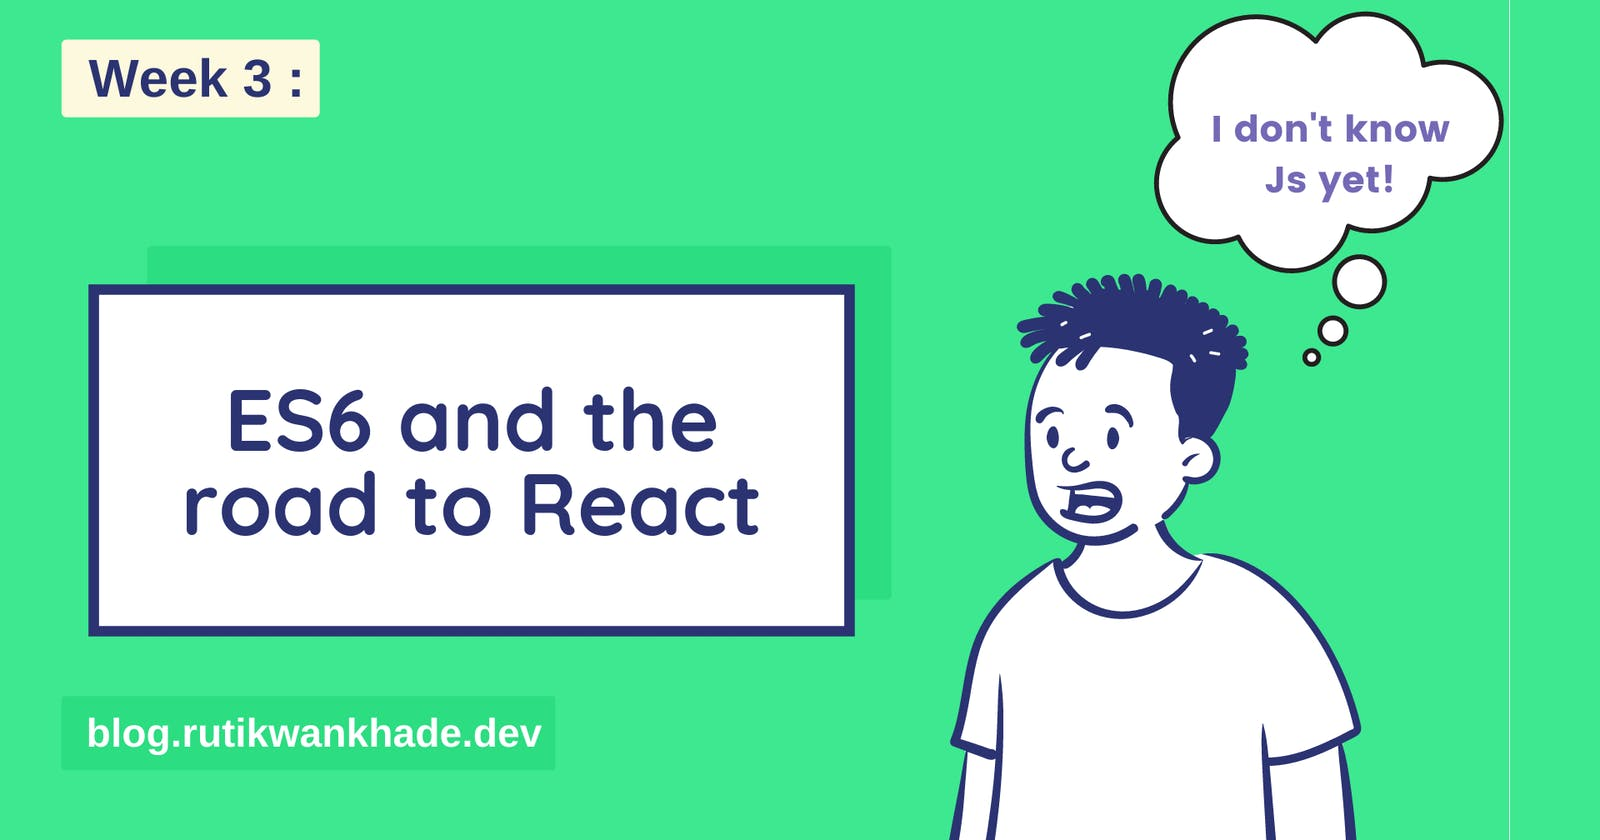 ES6 and the road to react